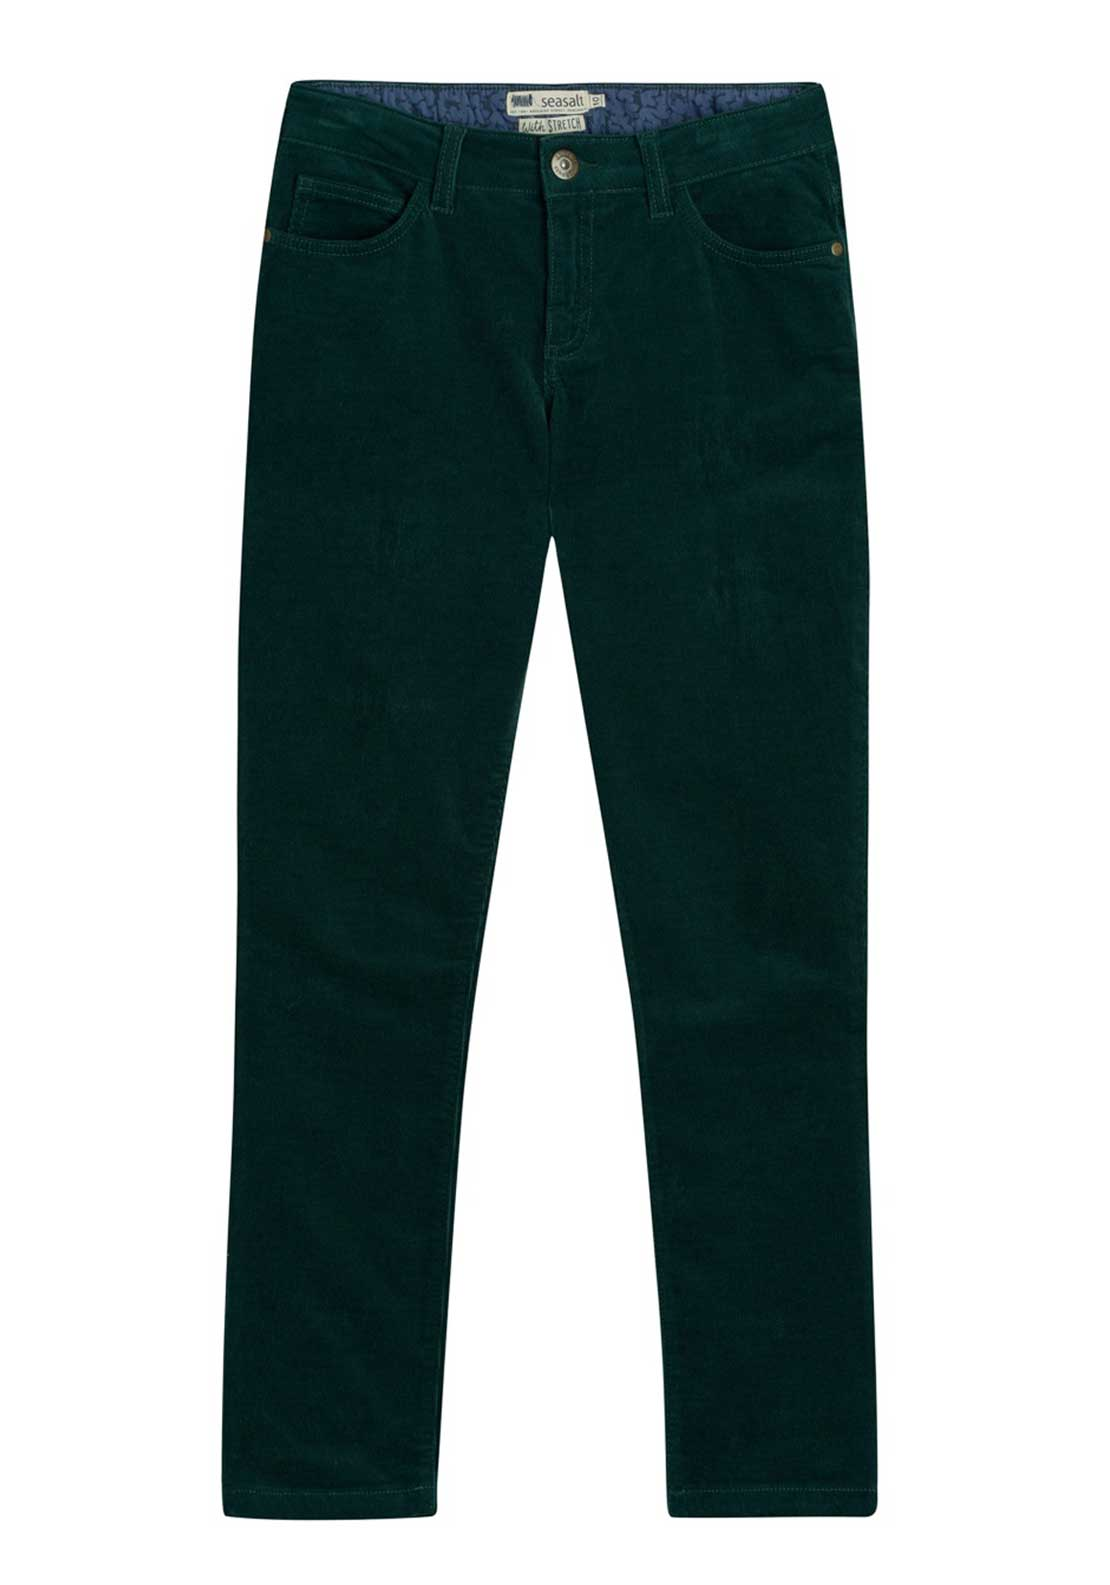 Seasalt Lamledra Slim Fit Cord Jeans, Thicket Green